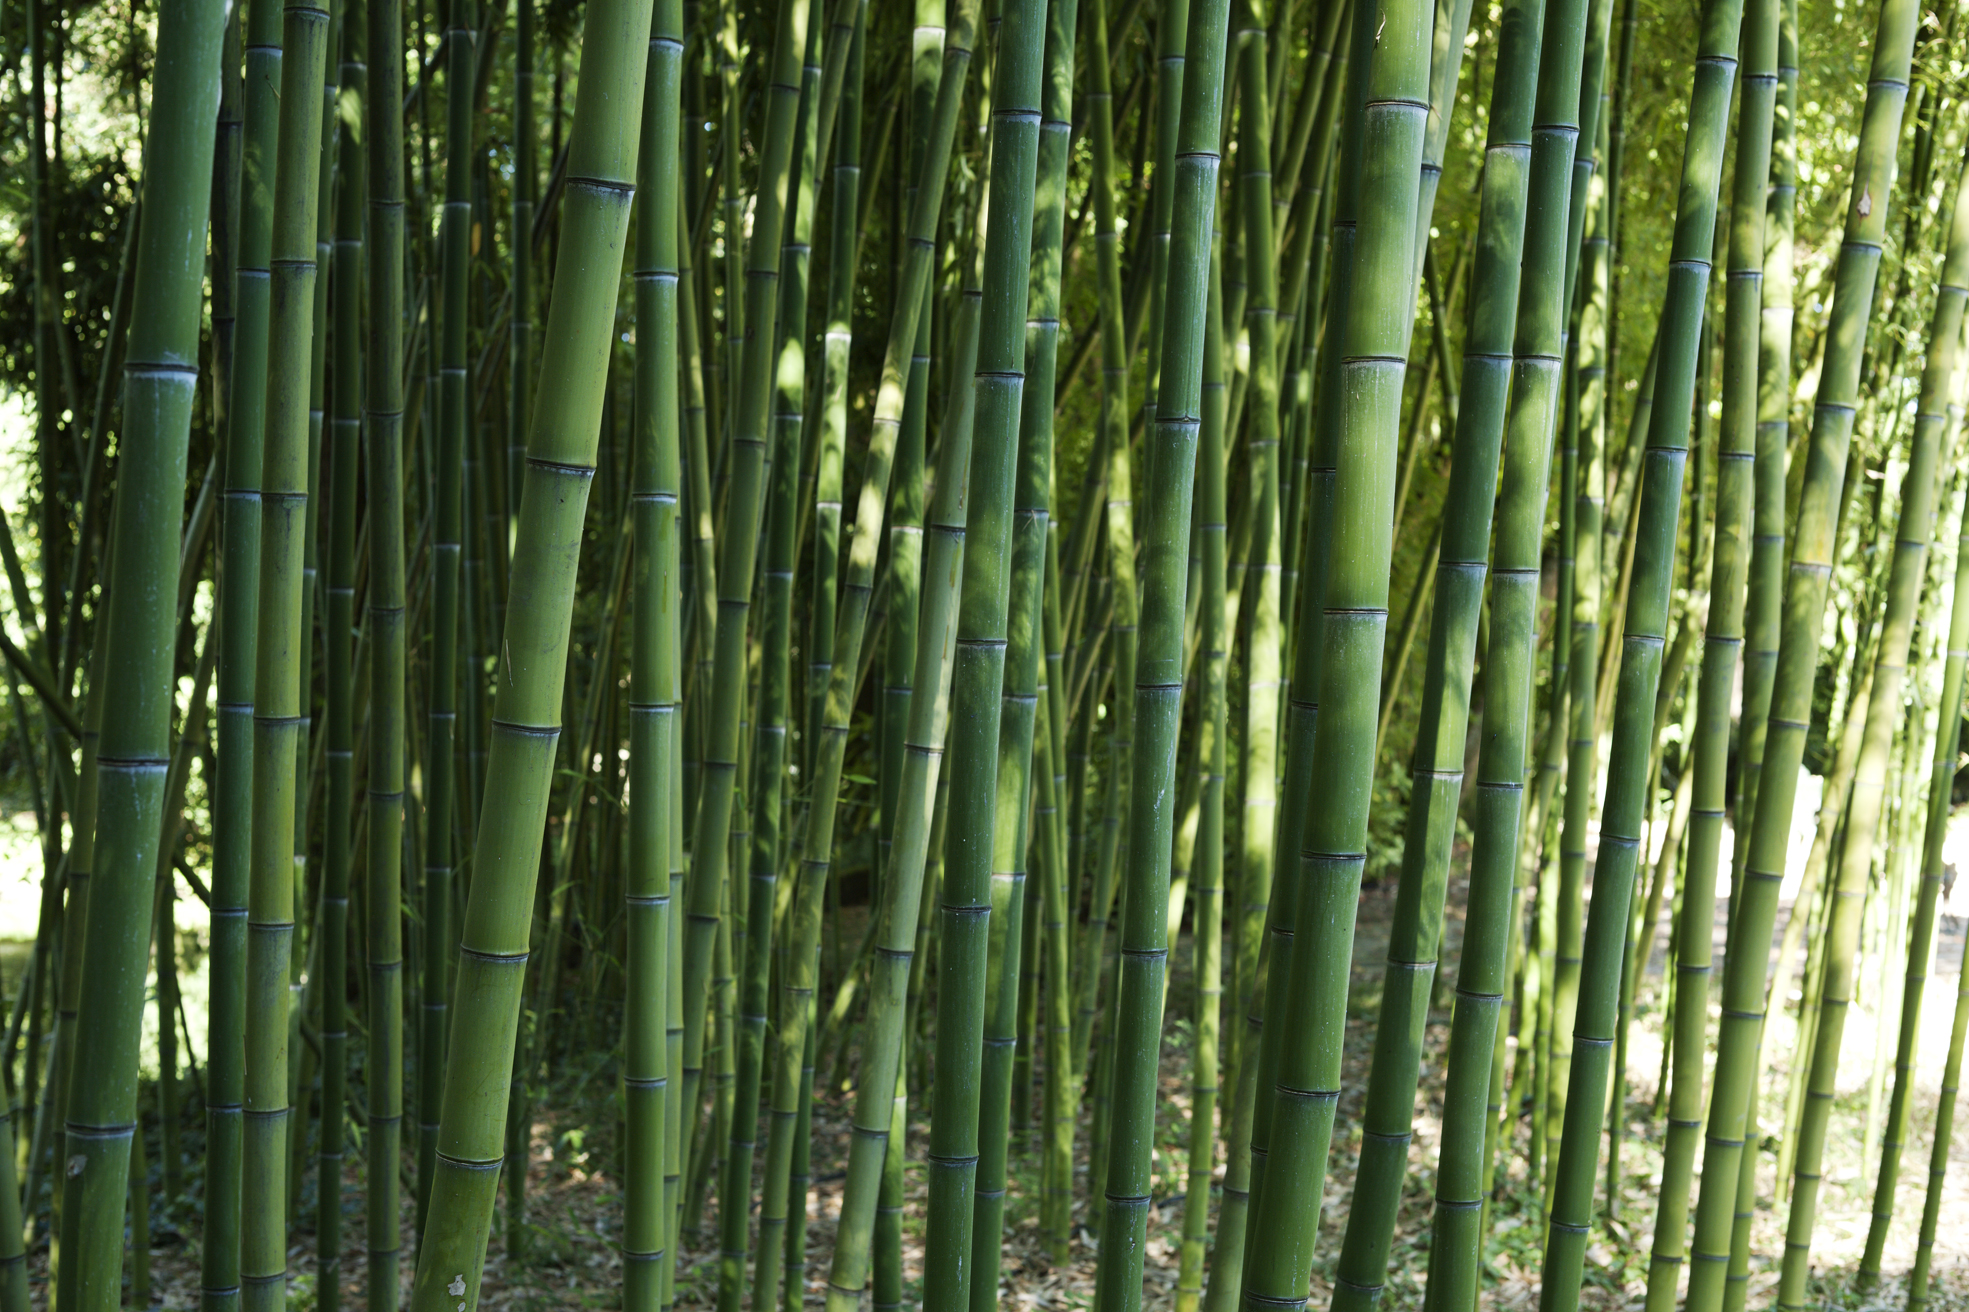 phyllostachys-glaucescens-foto-marco-campanini-